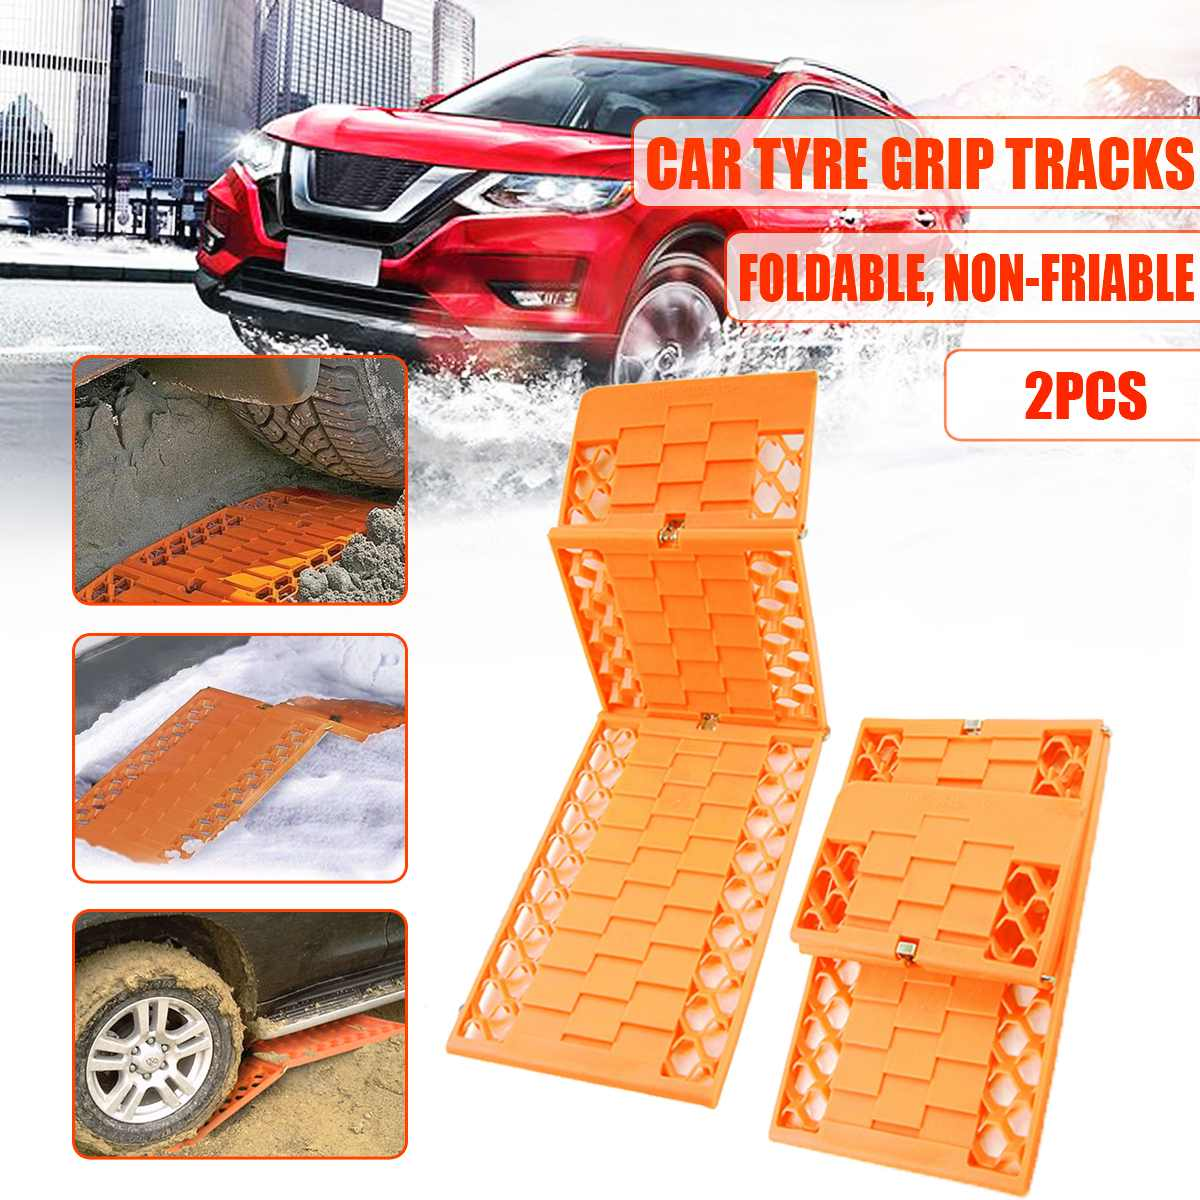 Escaper Tracks-Mats Tyre-Grip Sand-Rescue Rubber Snow Mud Car Folding Security 2pcs/Set title=